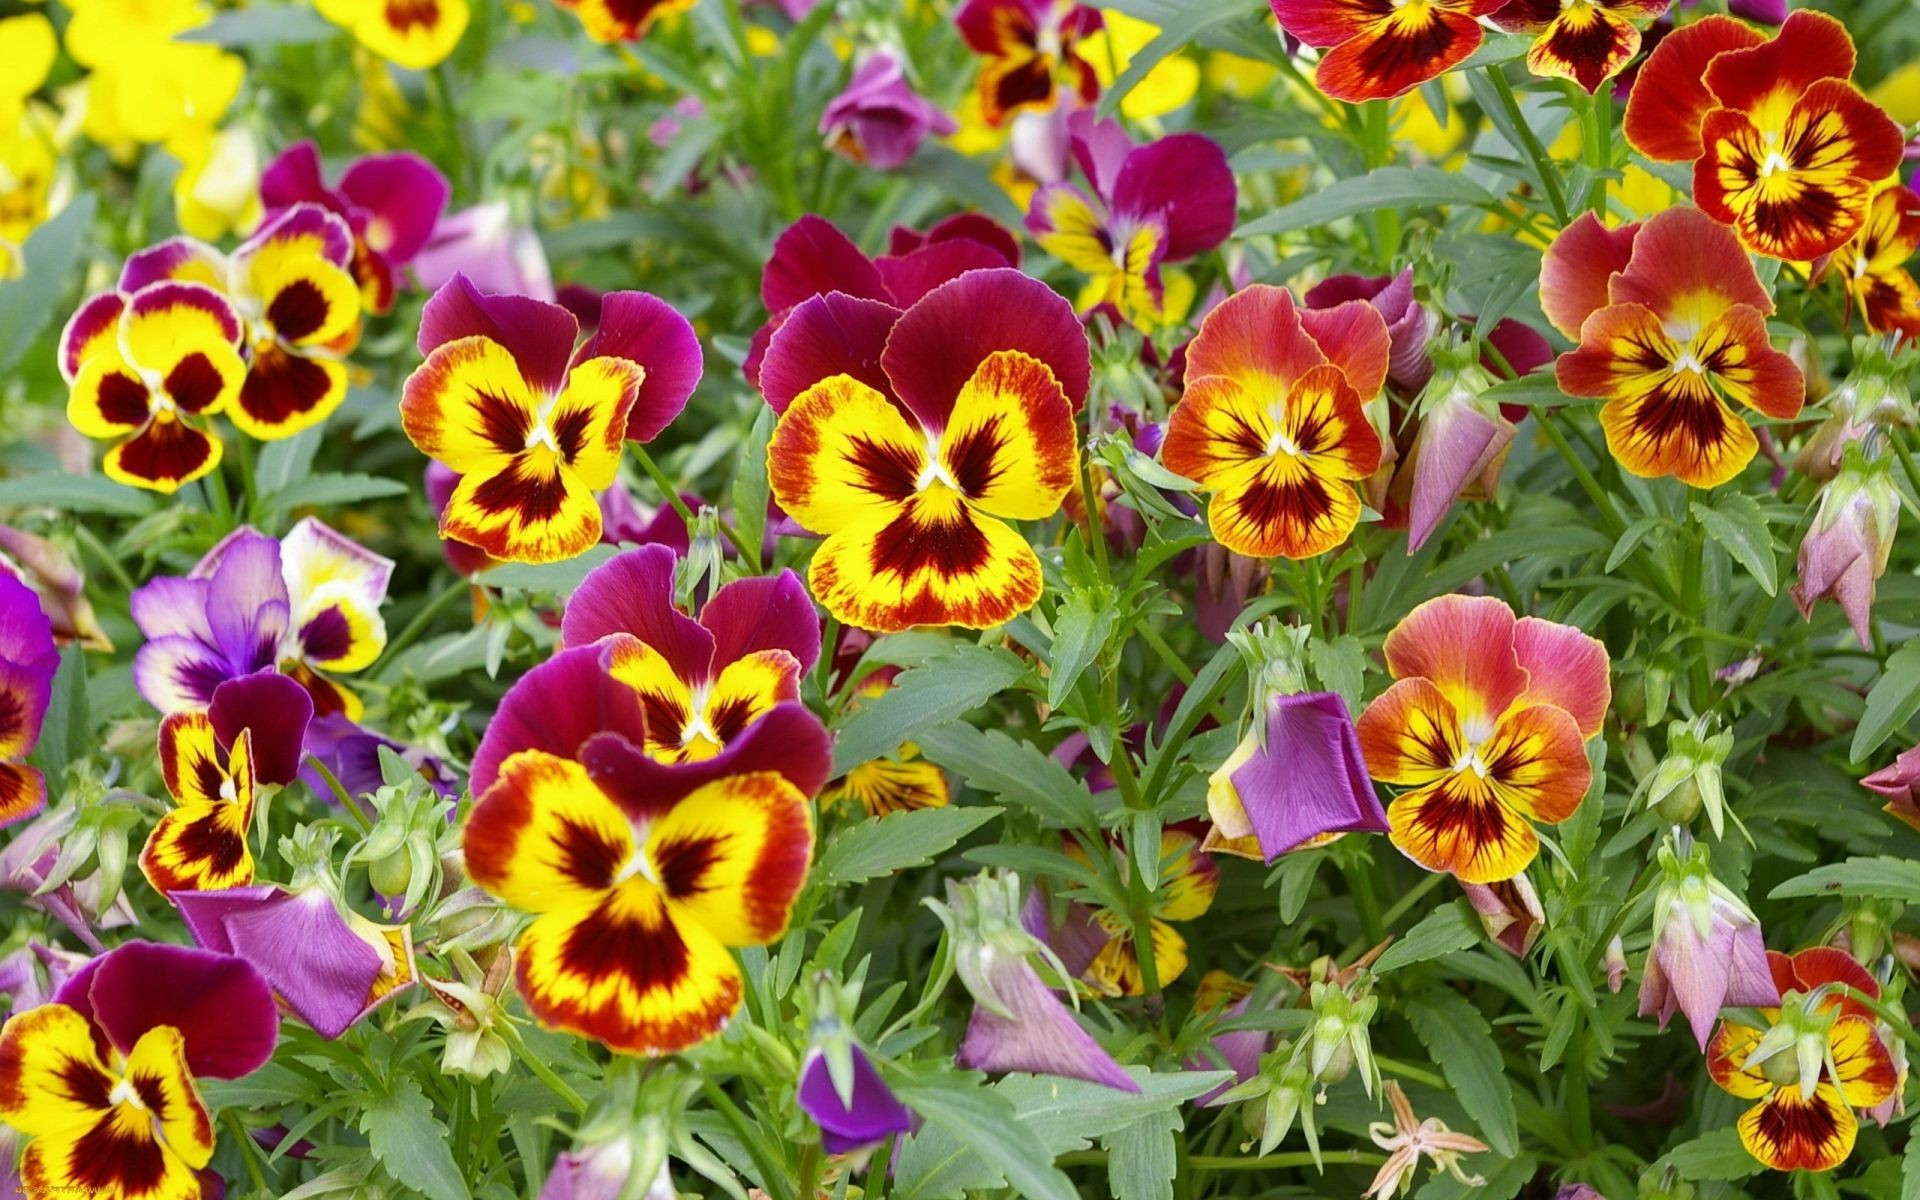 flowers nature flower floral pansy garden flora summer leaf bright viola blooming color petal violet growth botanical outdoors fair weather horticulture